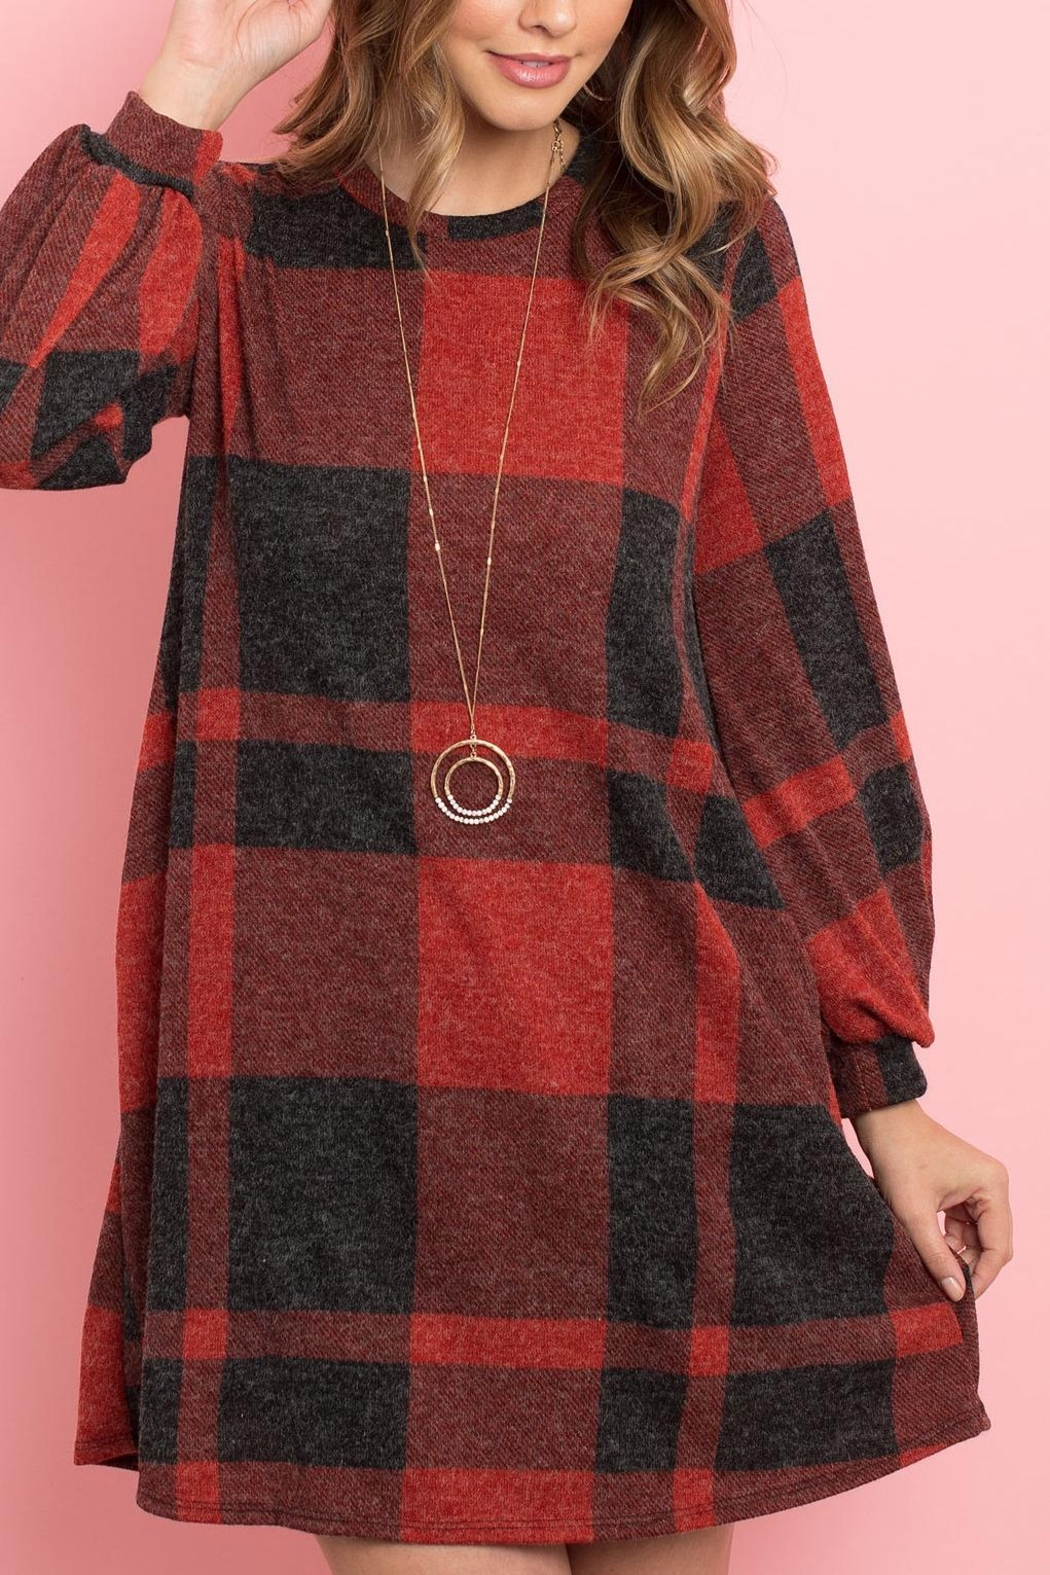 Riah Fashion Round-Neck-Puff-Sleeved-Plaid-Knee-Length-Dress - Front Cropped Image